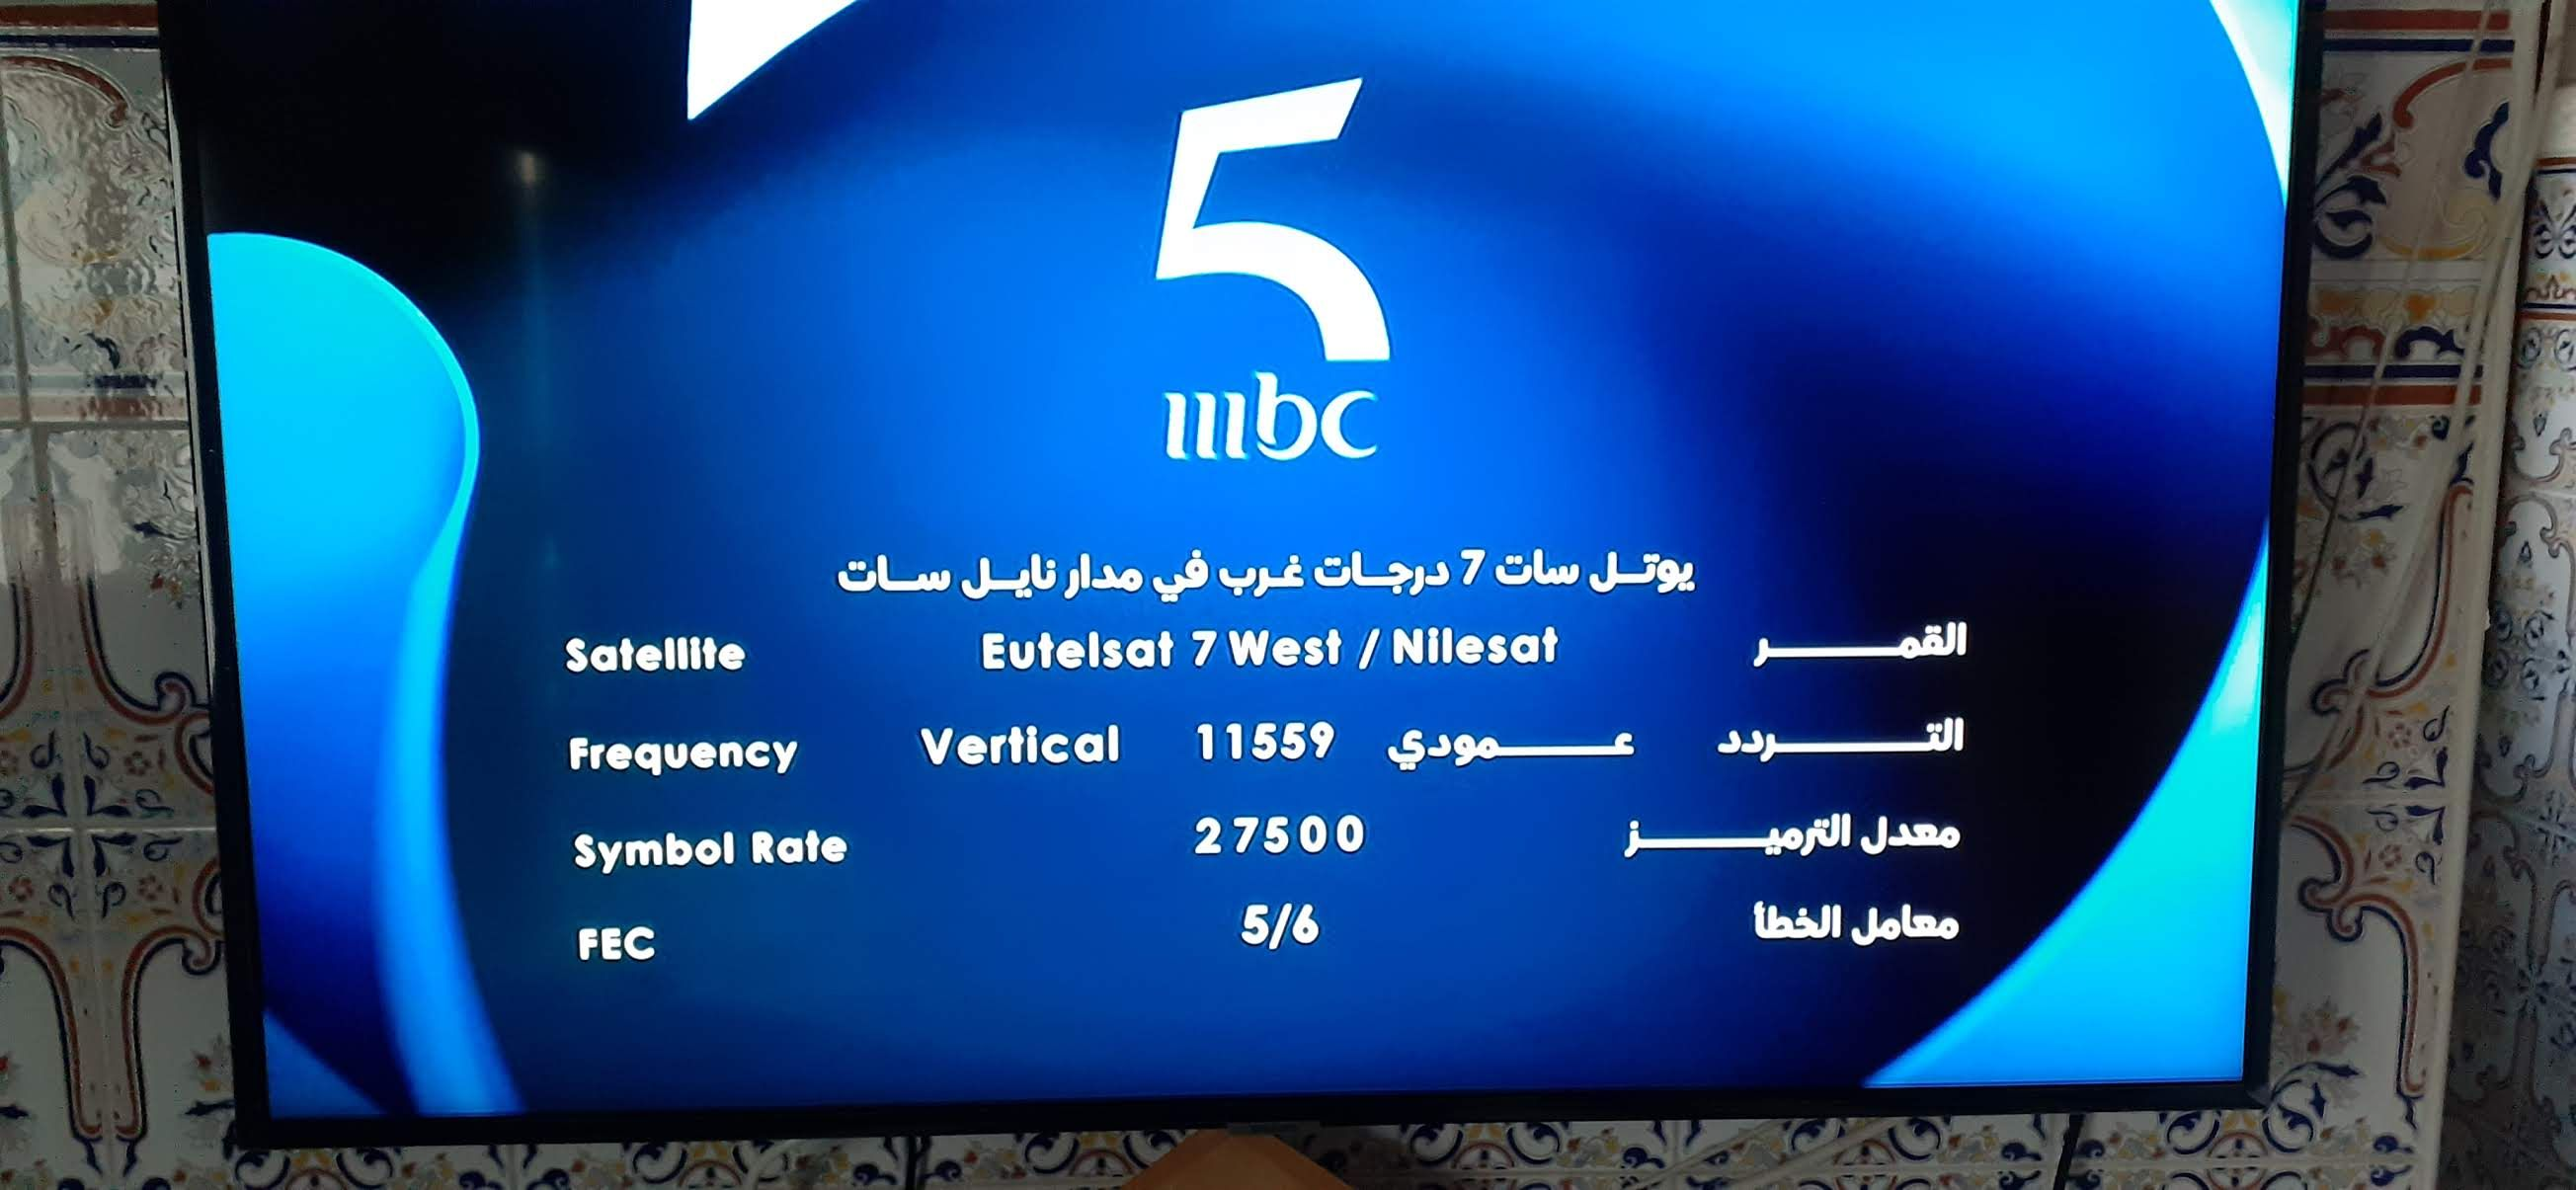 Mbc 5 Frequency On Nilesat 7w Badr 26e Freqode Com Tv Channel Frequency Sports Channel News Channels Real Madrid Tv